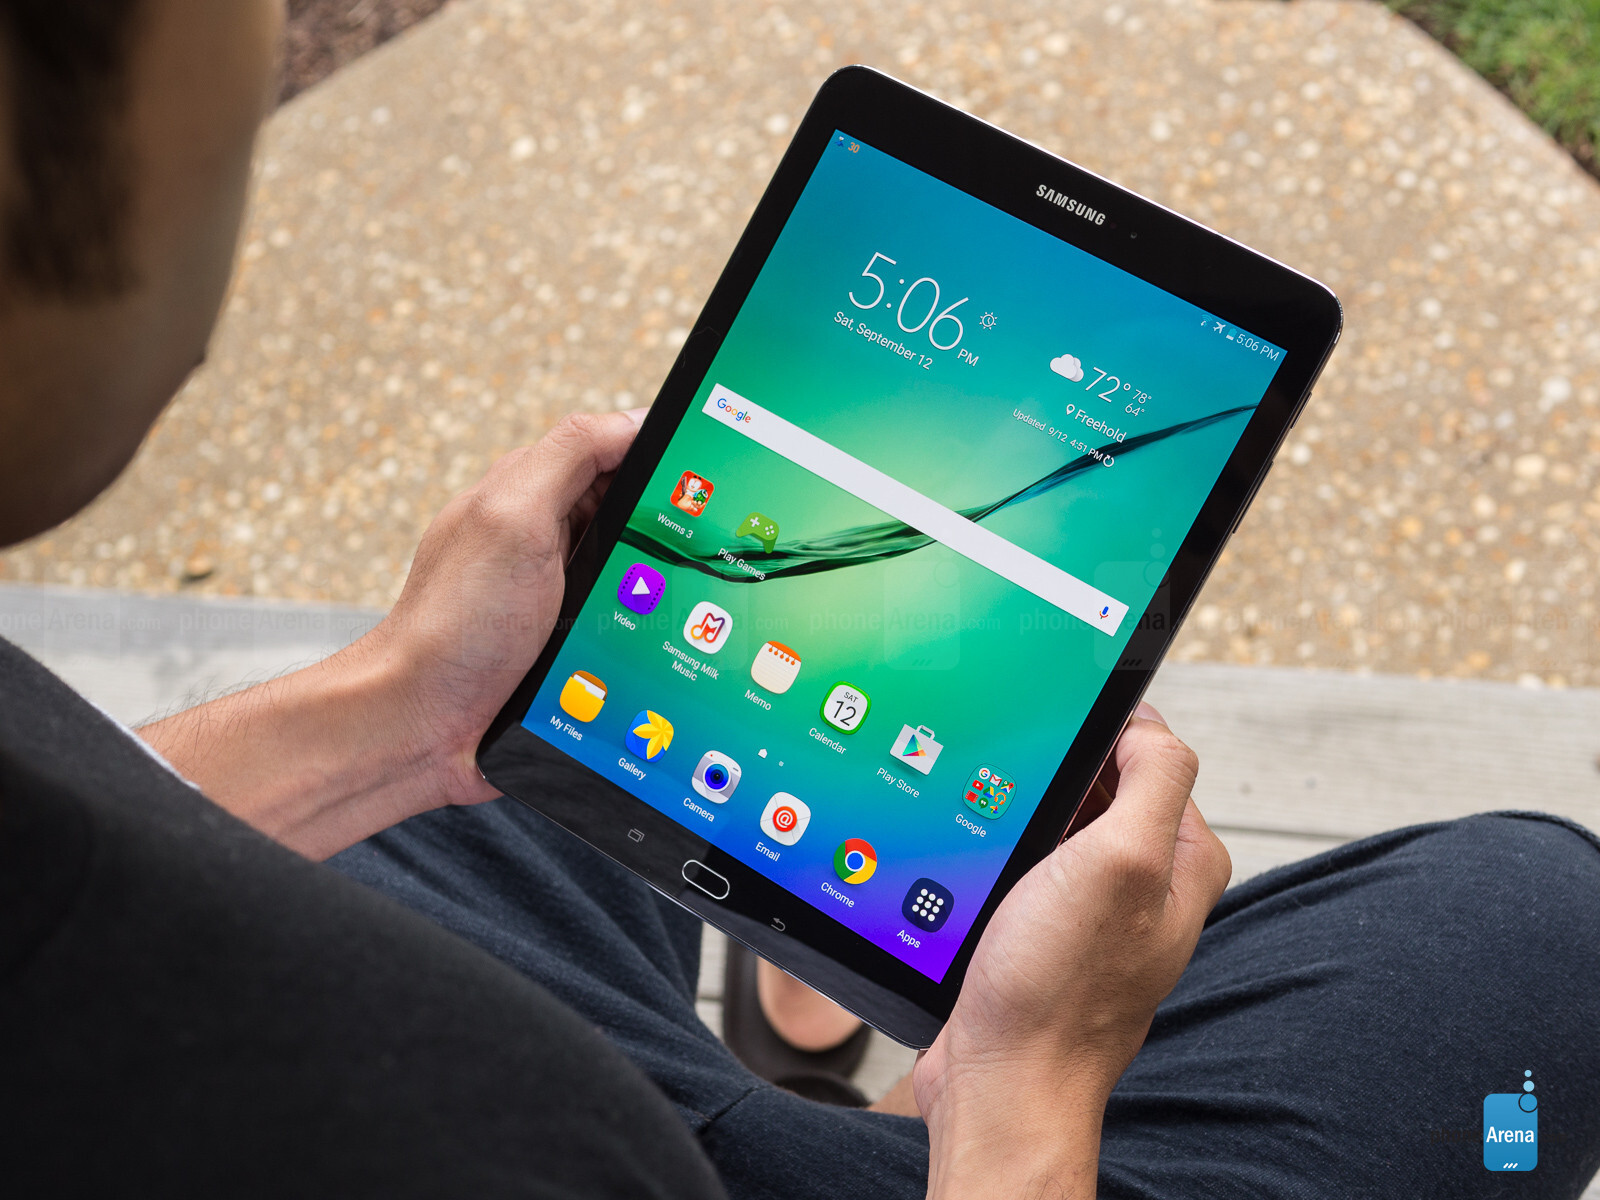 samsung galaxy tab s2 8 0 and 9 7 start getting android 7. Black Bedroom Furniture Sets. Home Design Ideas